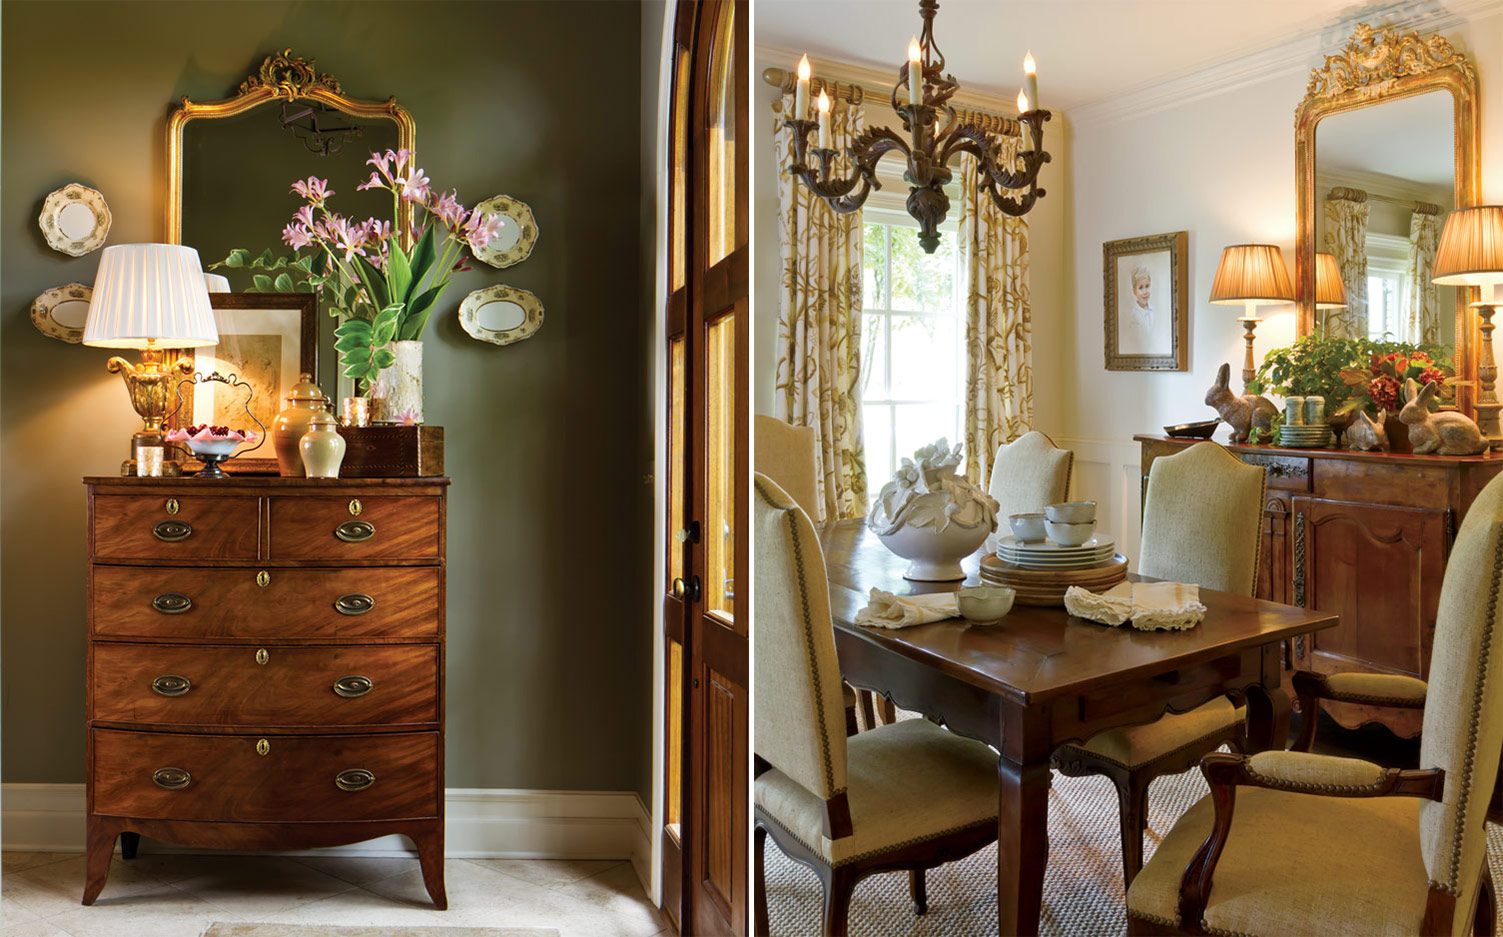 Designer sally may on the classical southern home for Home style design ideas